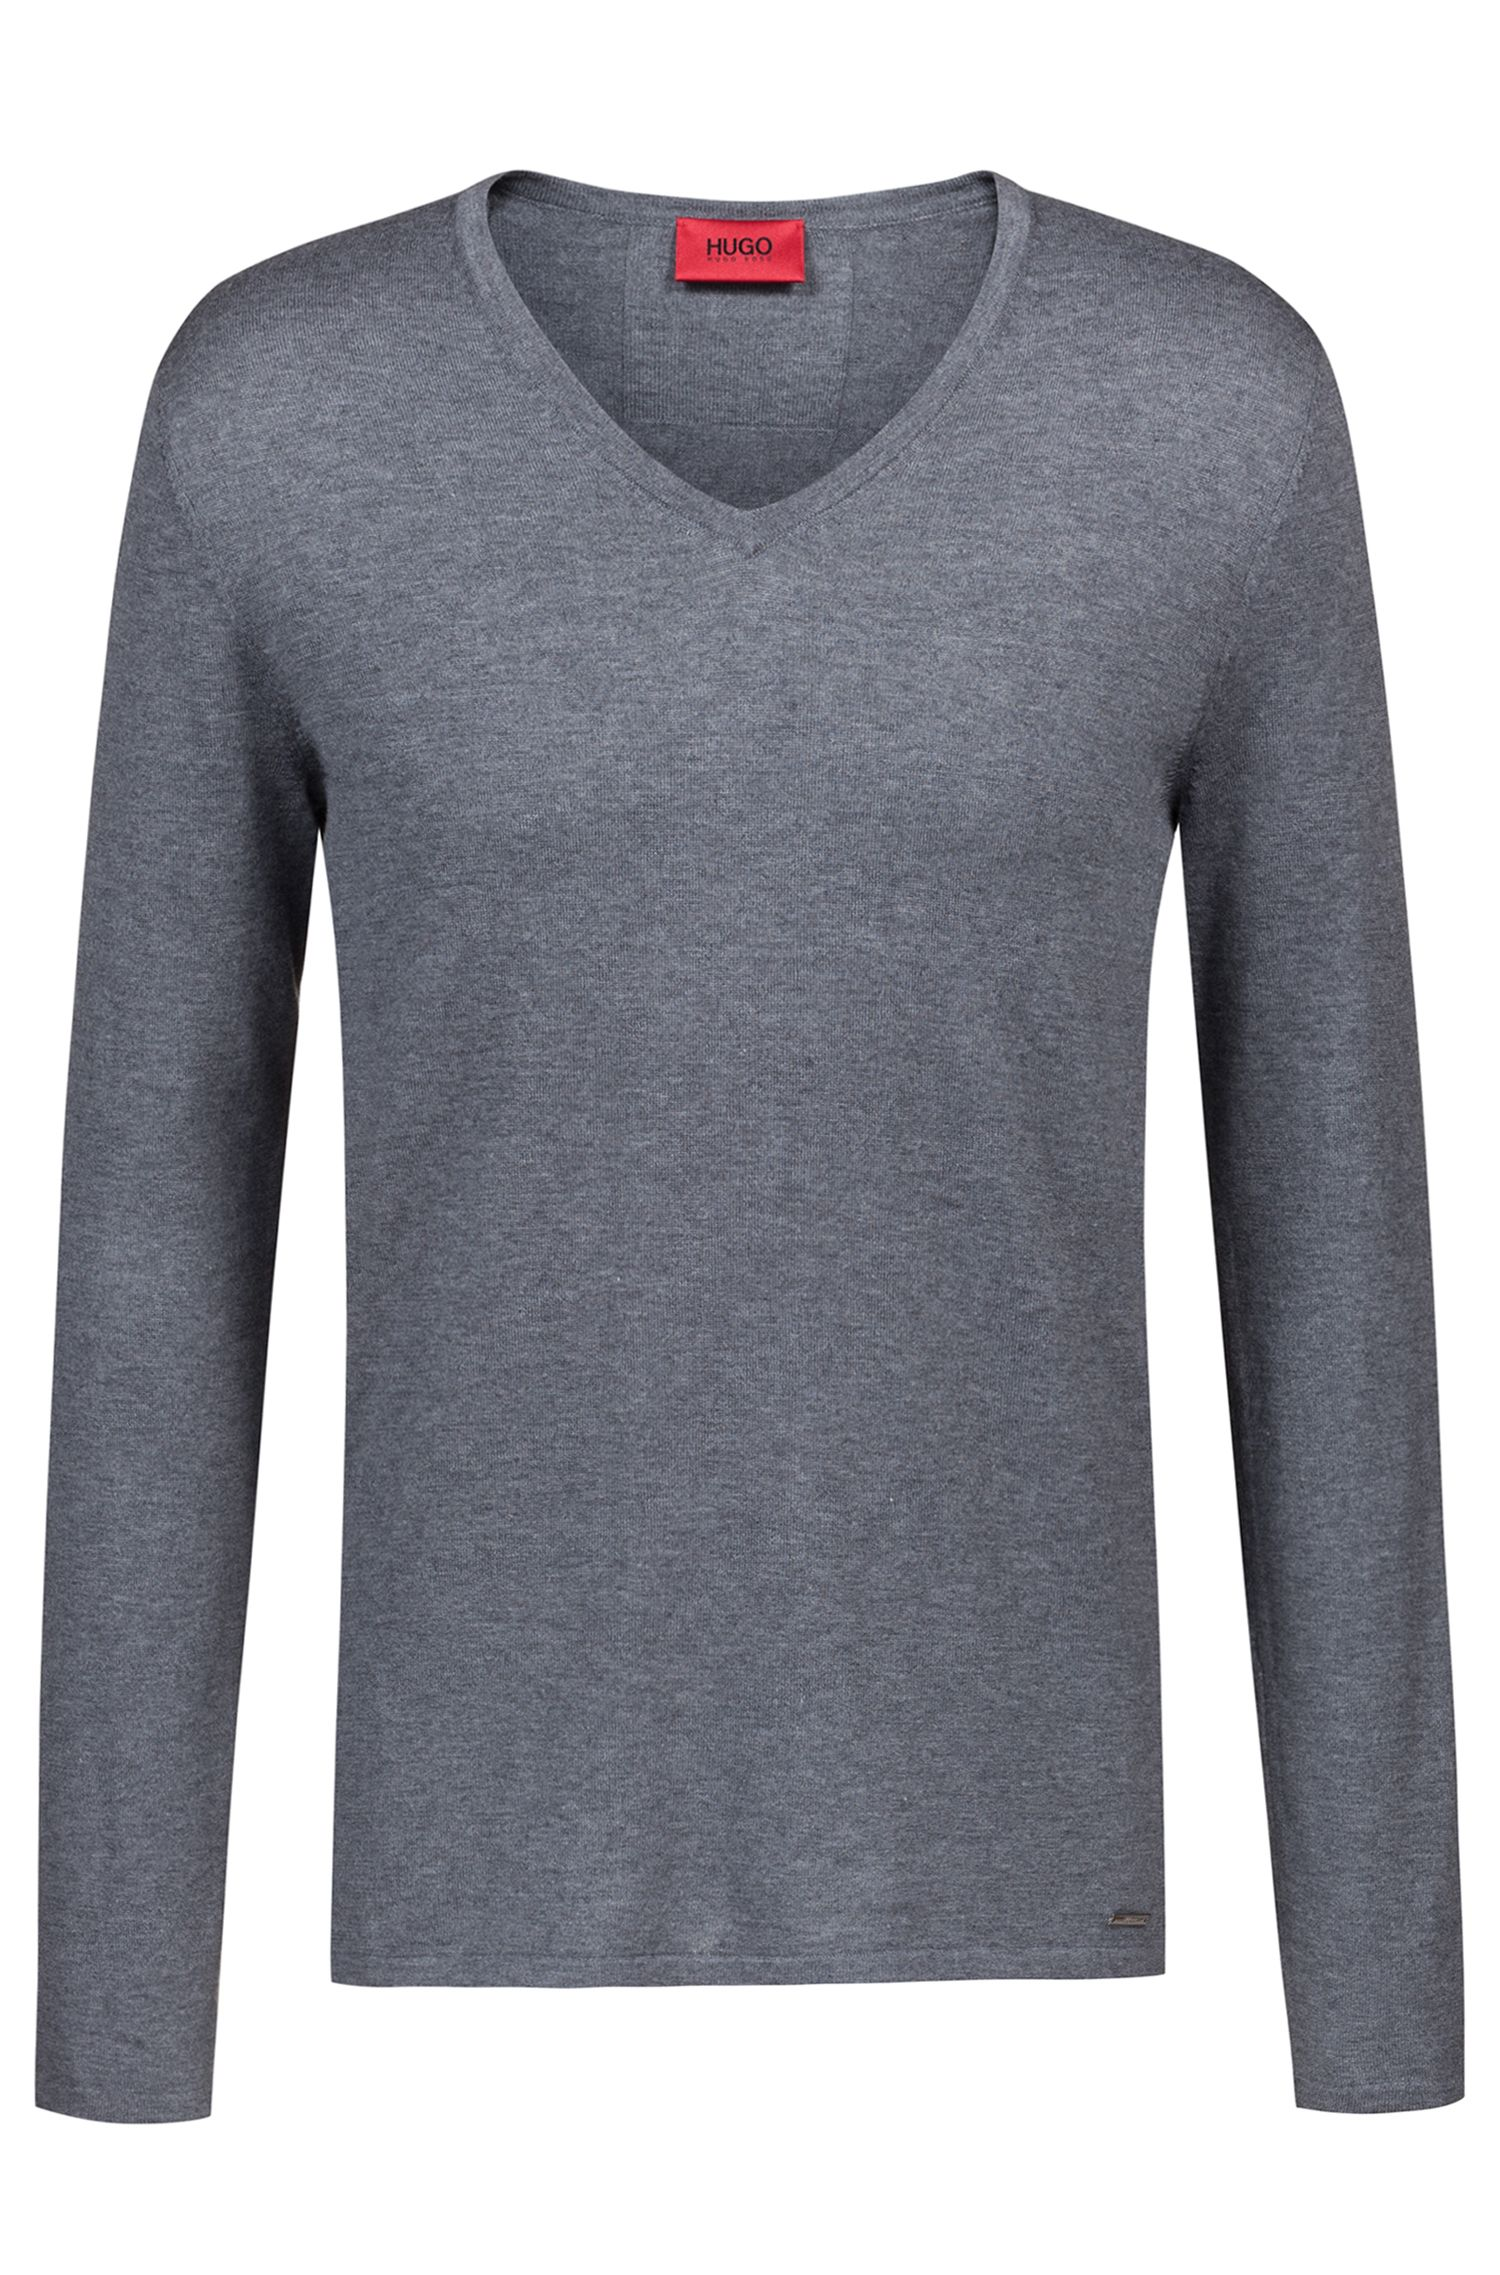 V-neck sweater in a cotton blend, Grey